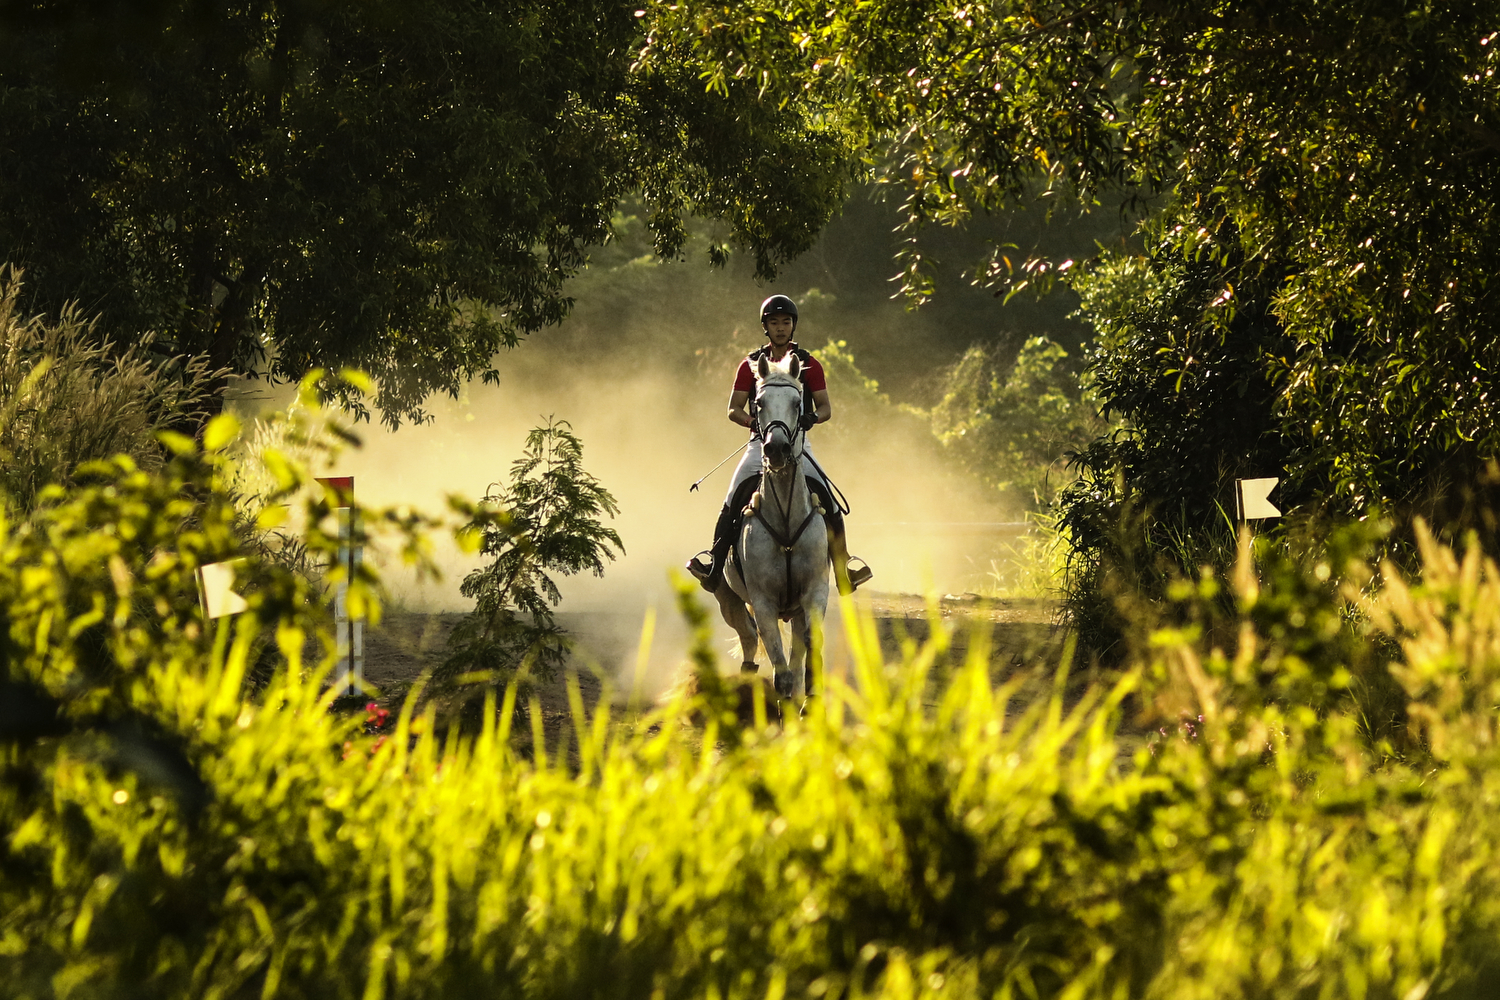 Supanut Wannakool of Thailand rides Luminous during the FEI Asia Eventing CCI1* Championship on December 9, 2017 in Pattaya, Thailand.